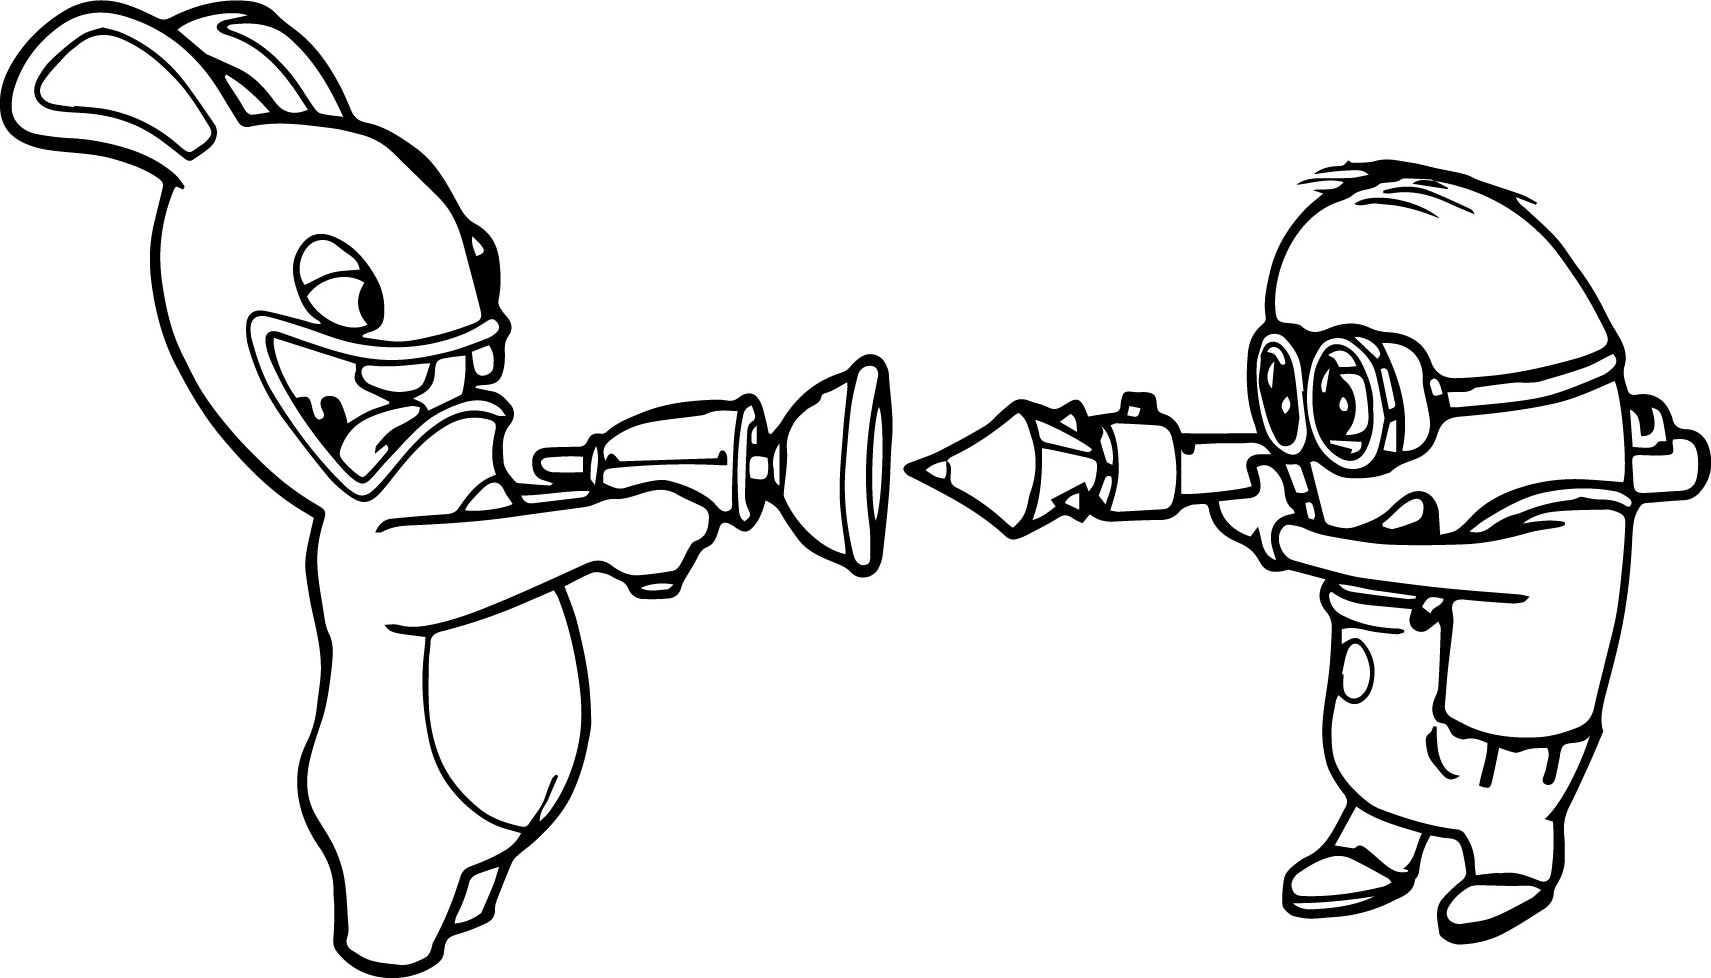 Rabbit Vs Minion Coloring Page Wecoloringpage